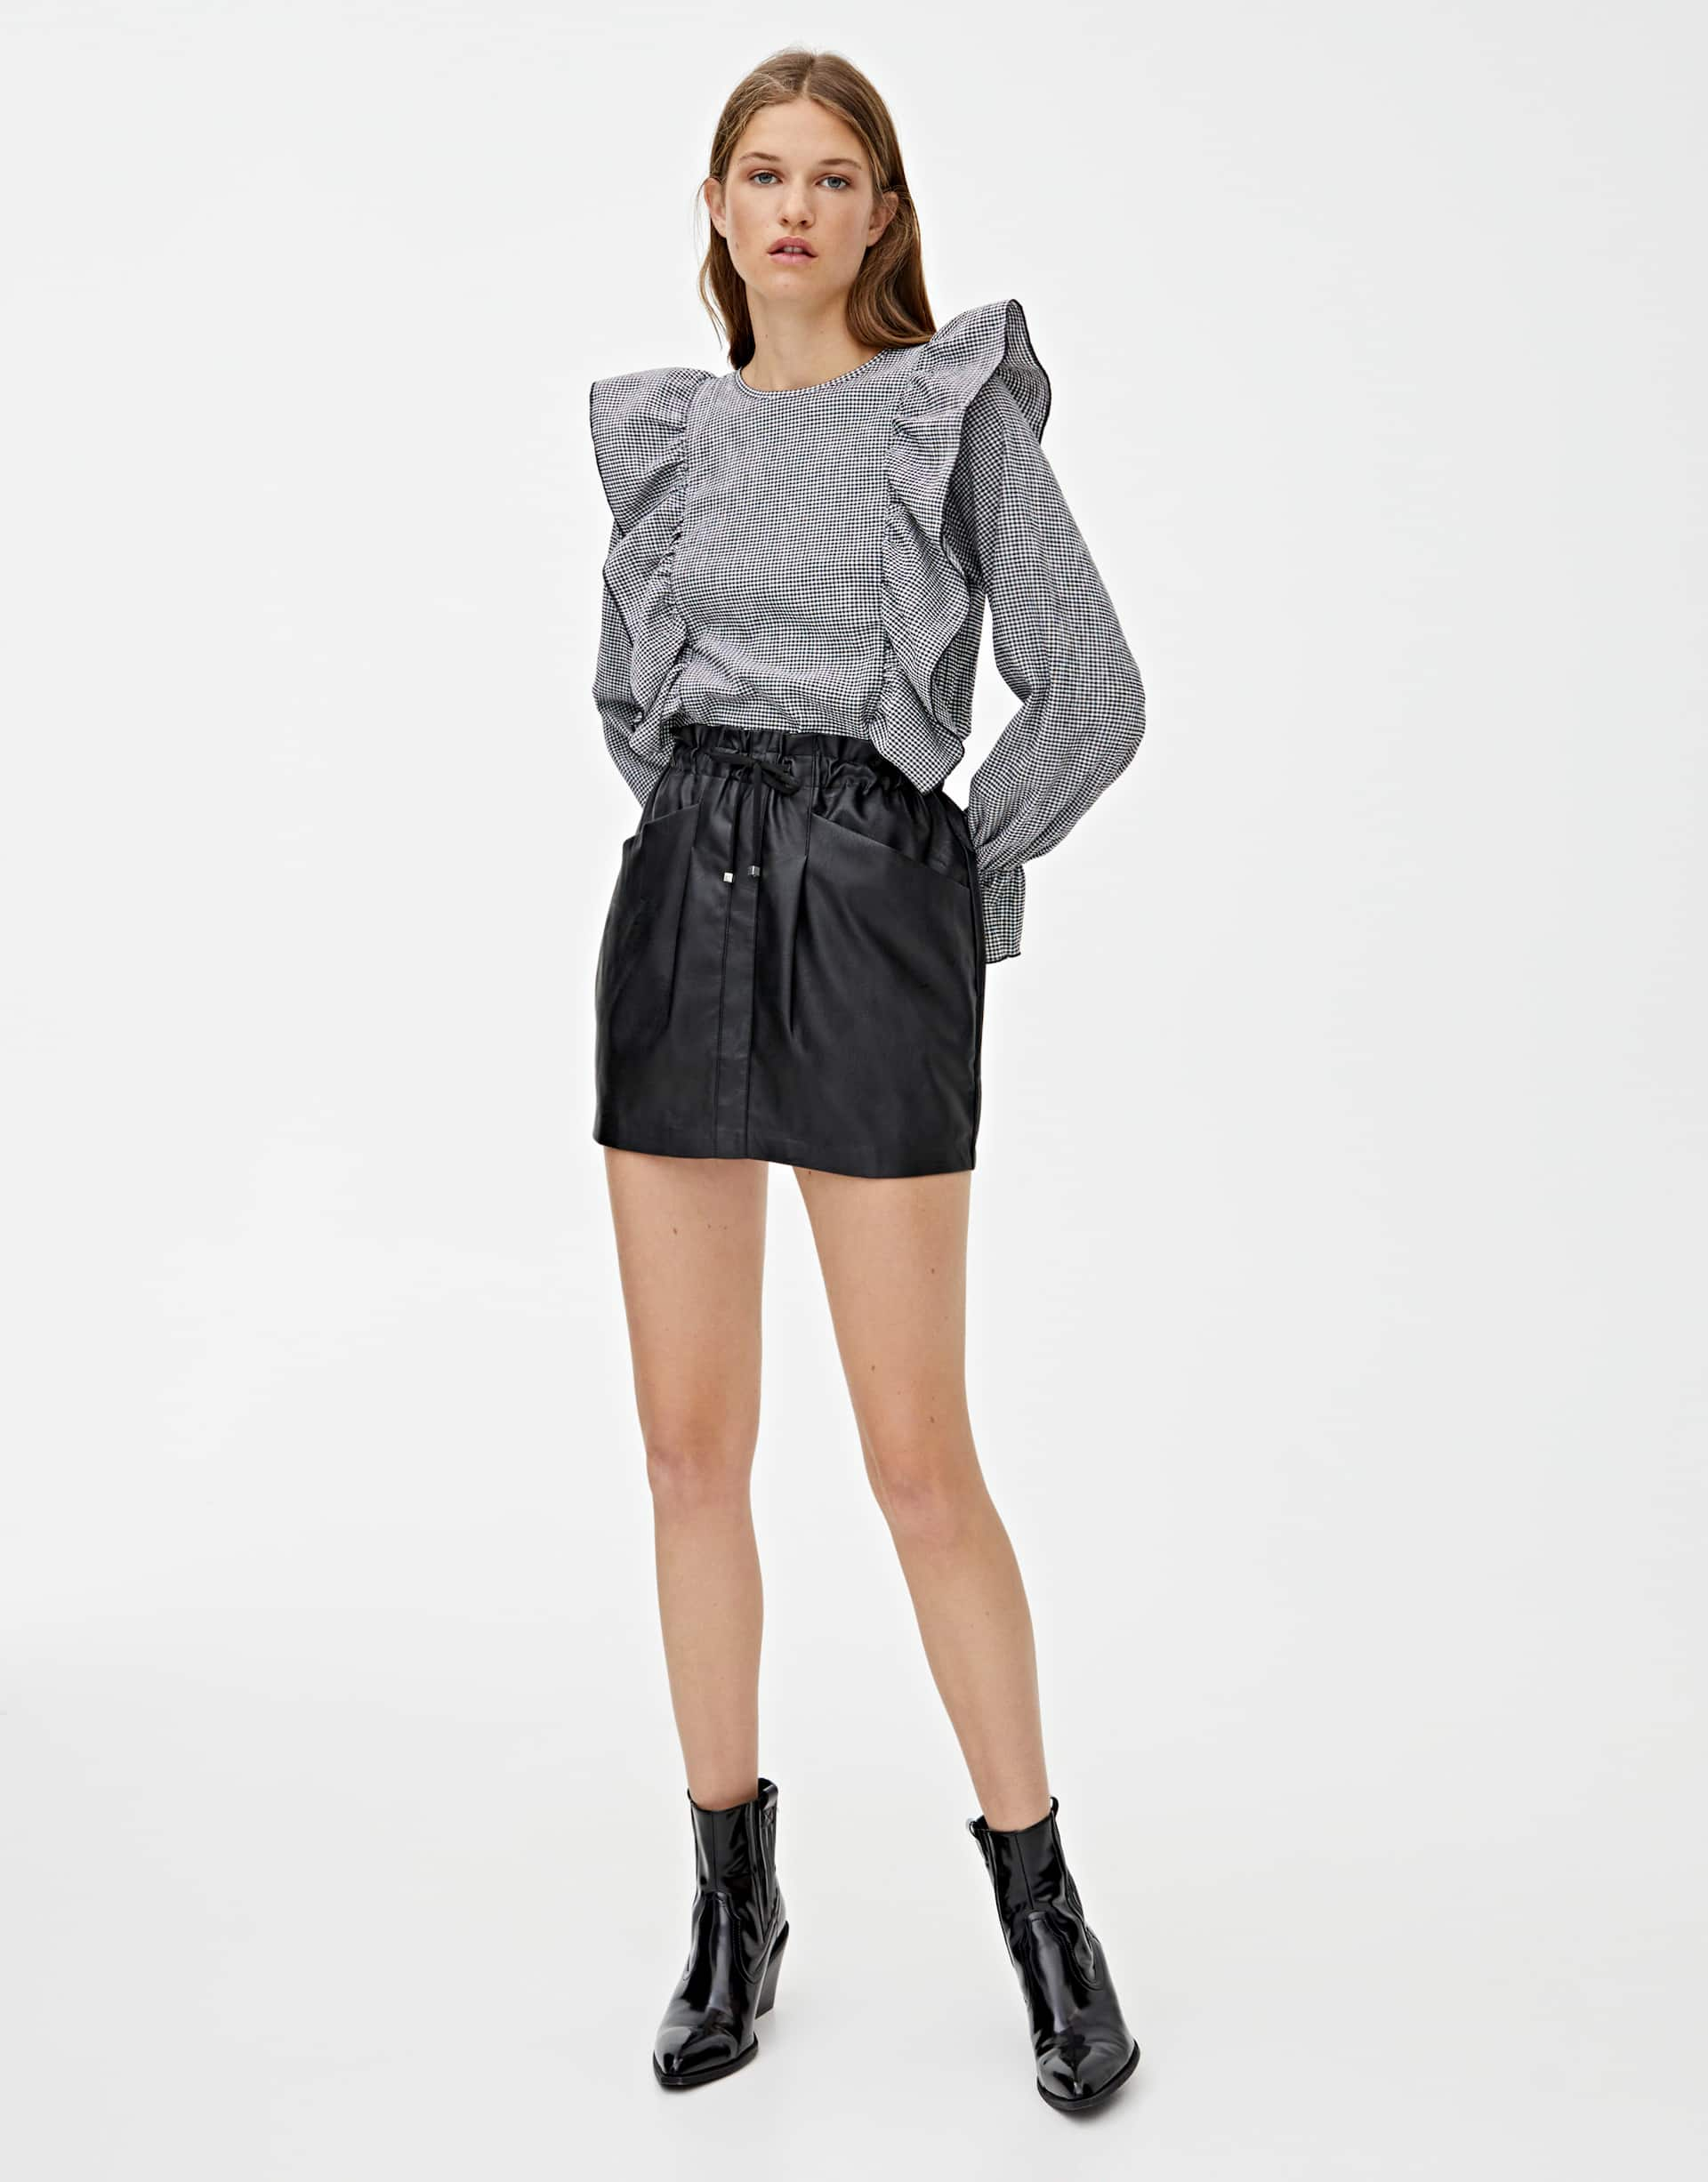 timeless design exceptional range of styles and colors new concept Faux leather drawstring mini skirt